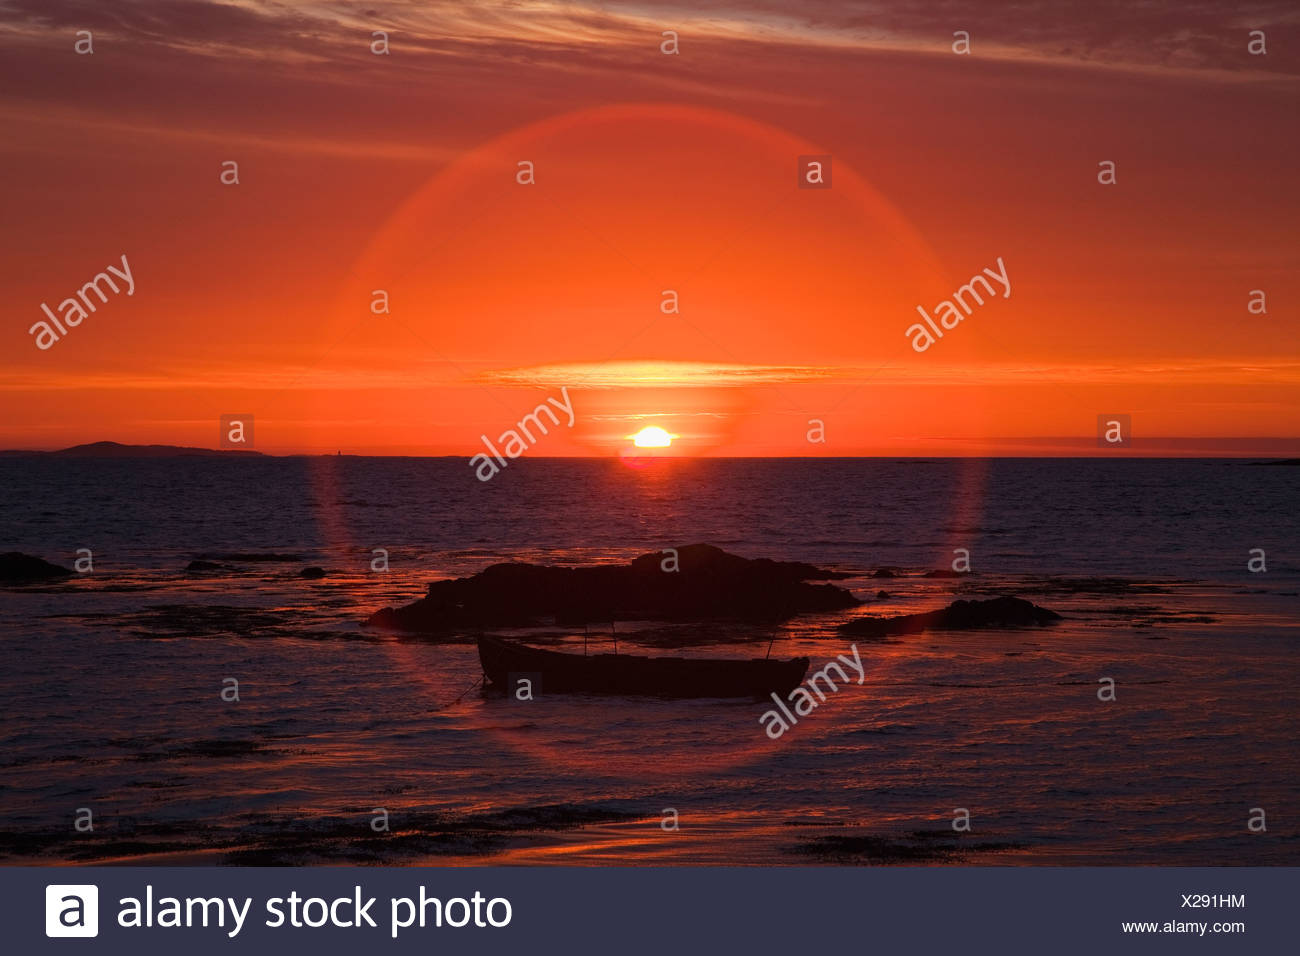 Sunset over mannin bay in a circular glare;County galway ireland - Stock Image